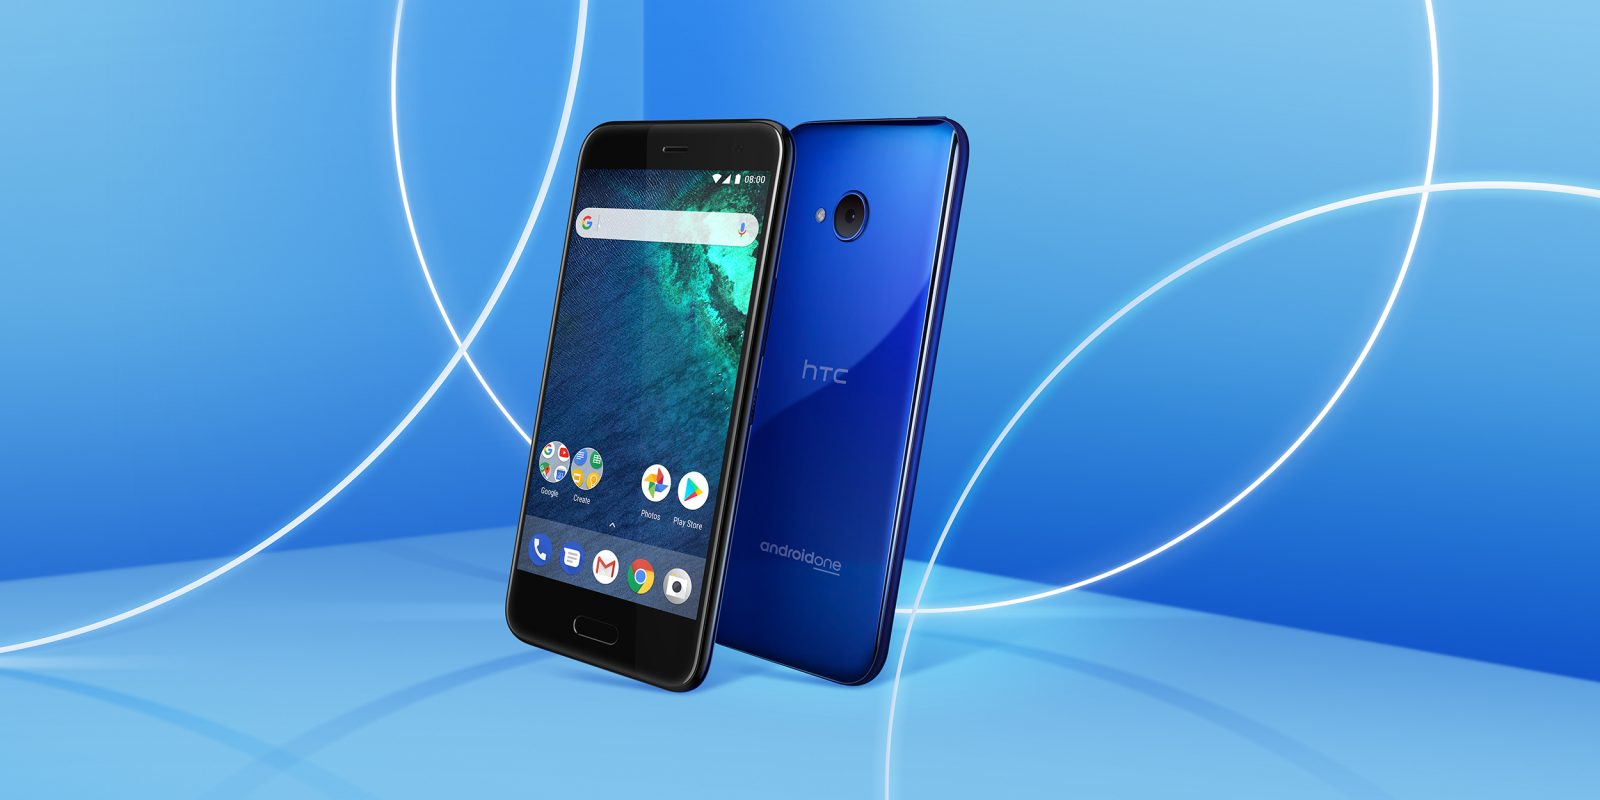 Unlocked HTC U11 Life receives an OS update to 8.0 Oreo